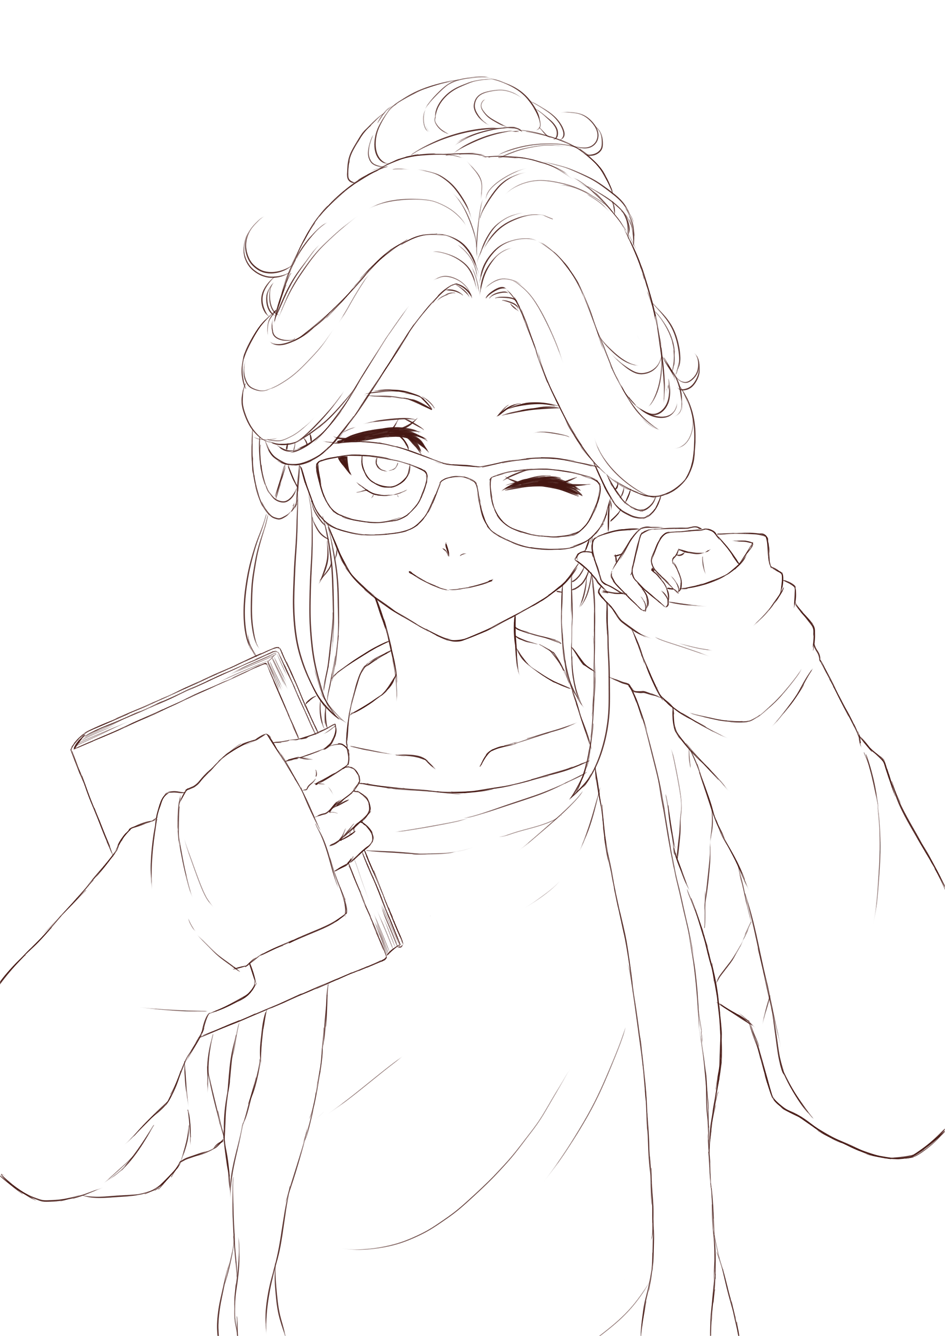 anime lineart transparent - google